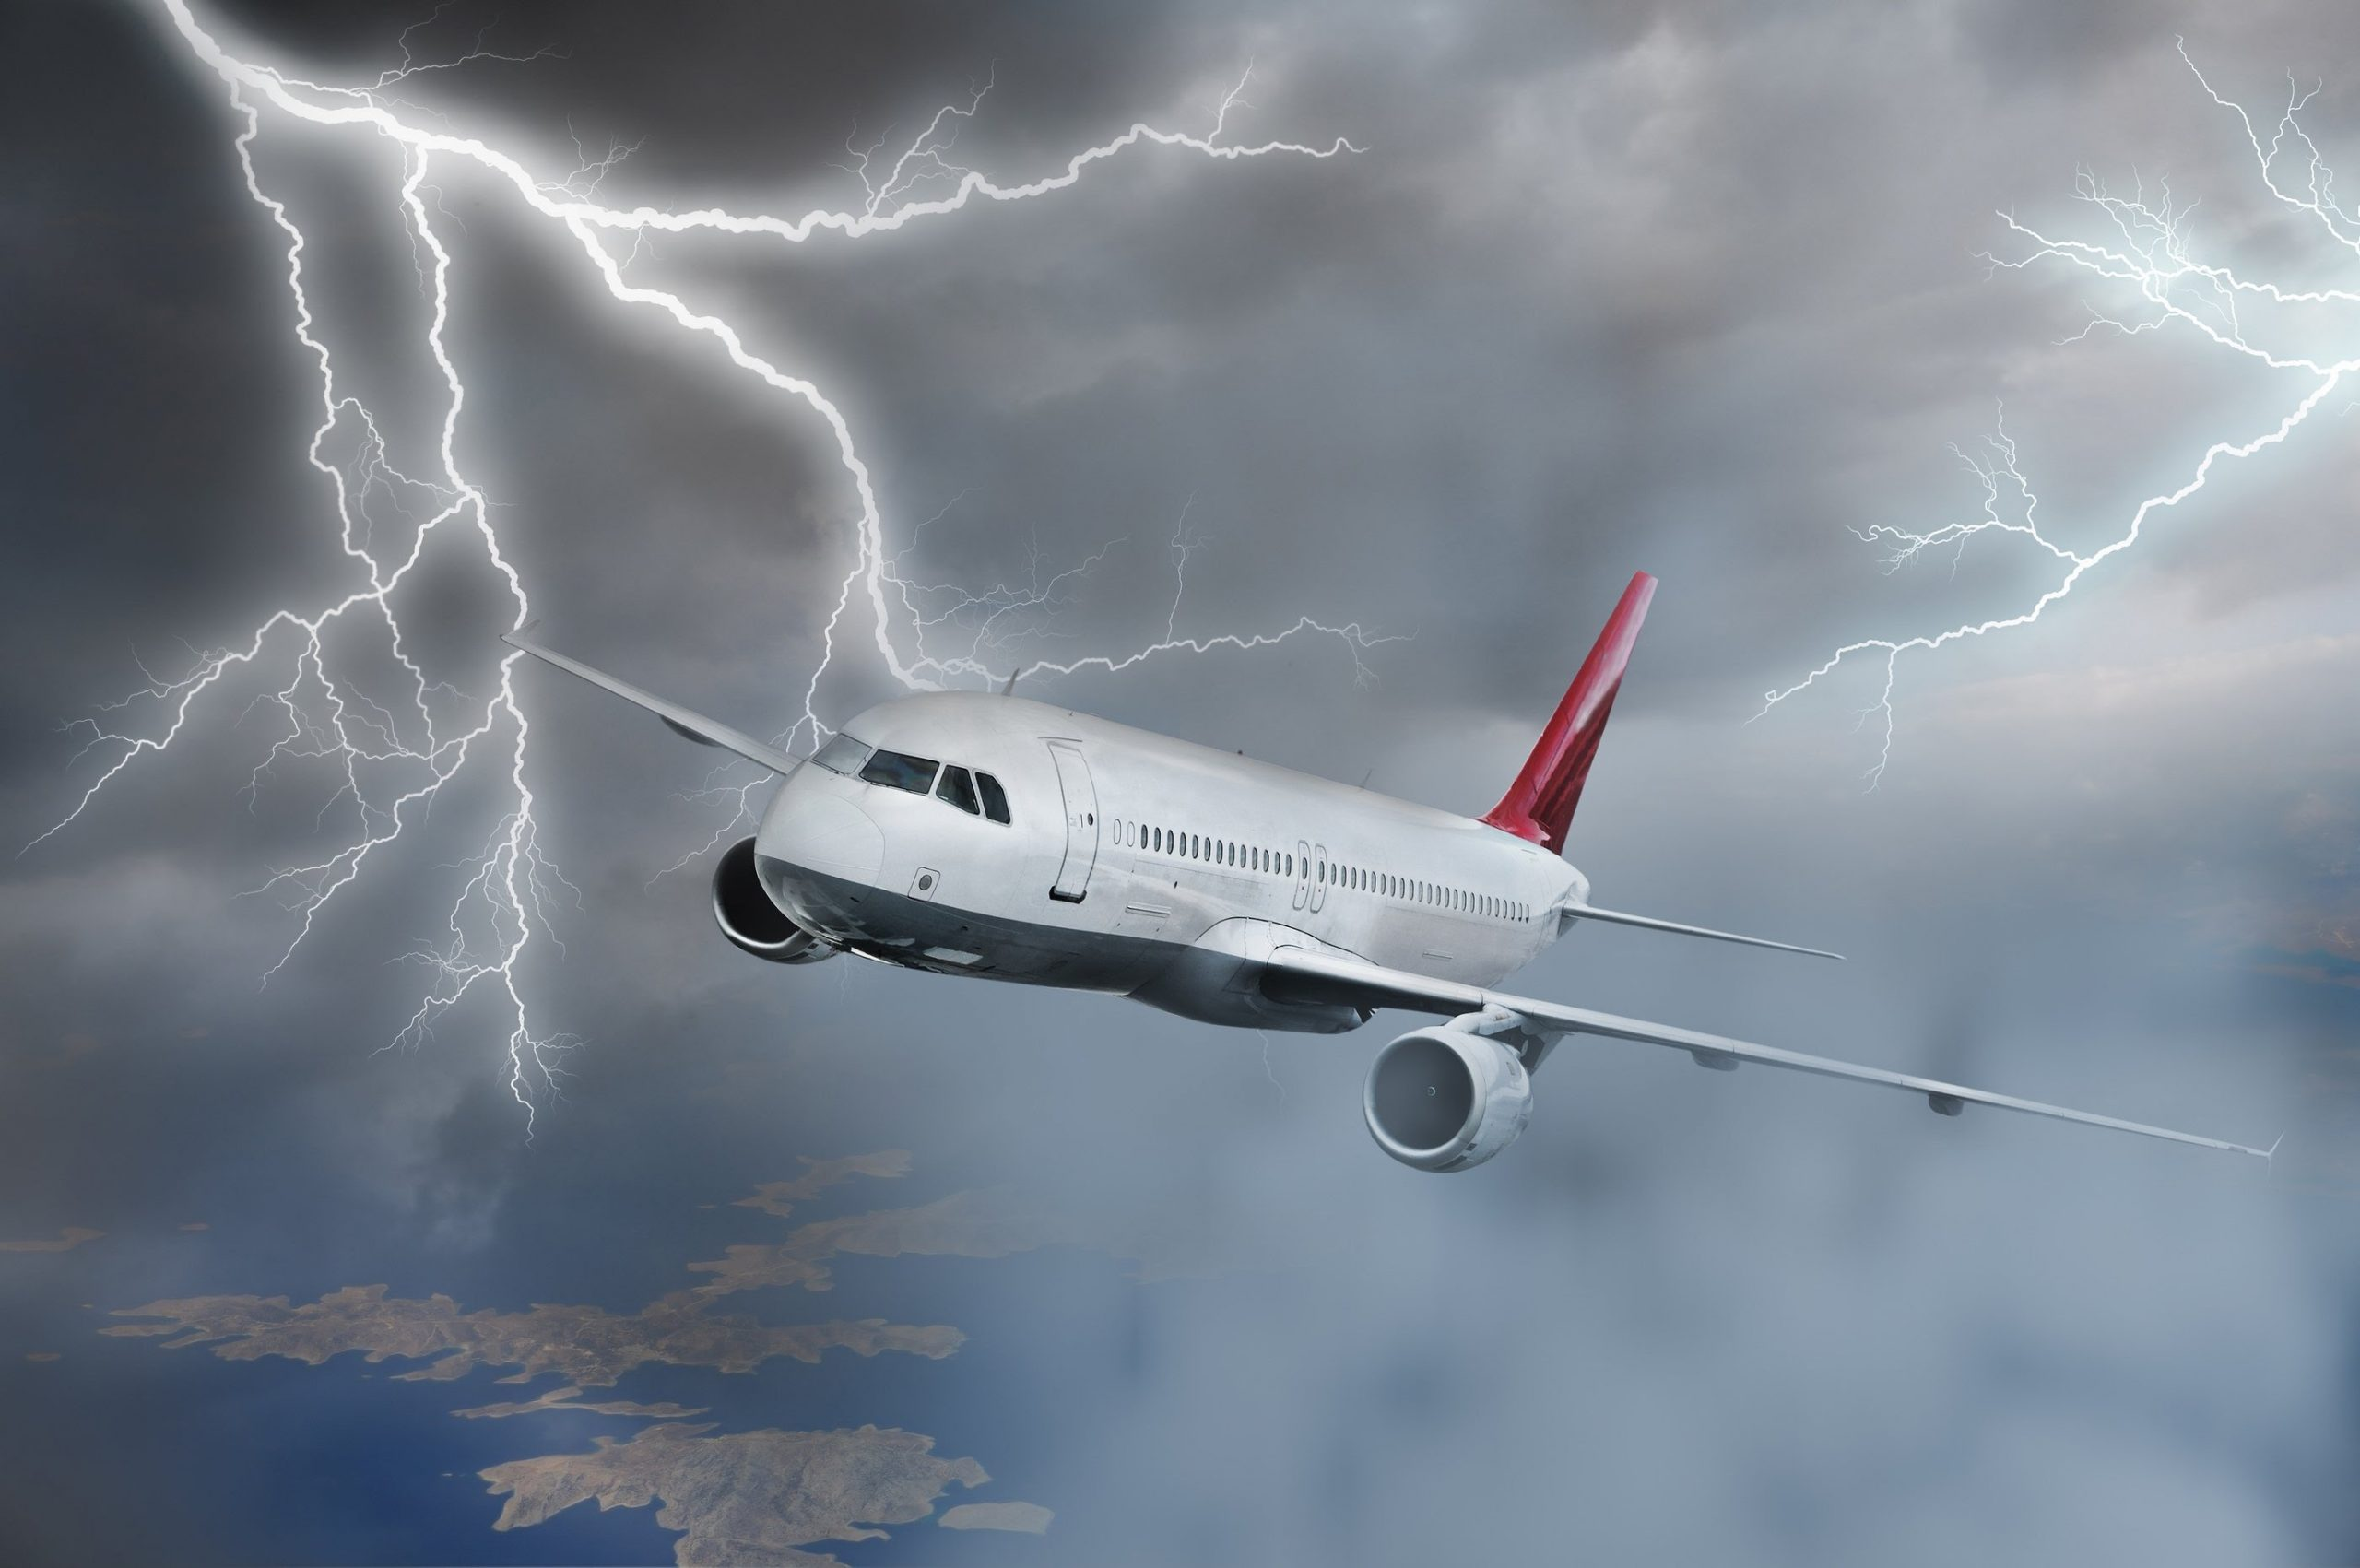 Passenger airplane of Aer Lingus company in the Britain sky was struck by lightning